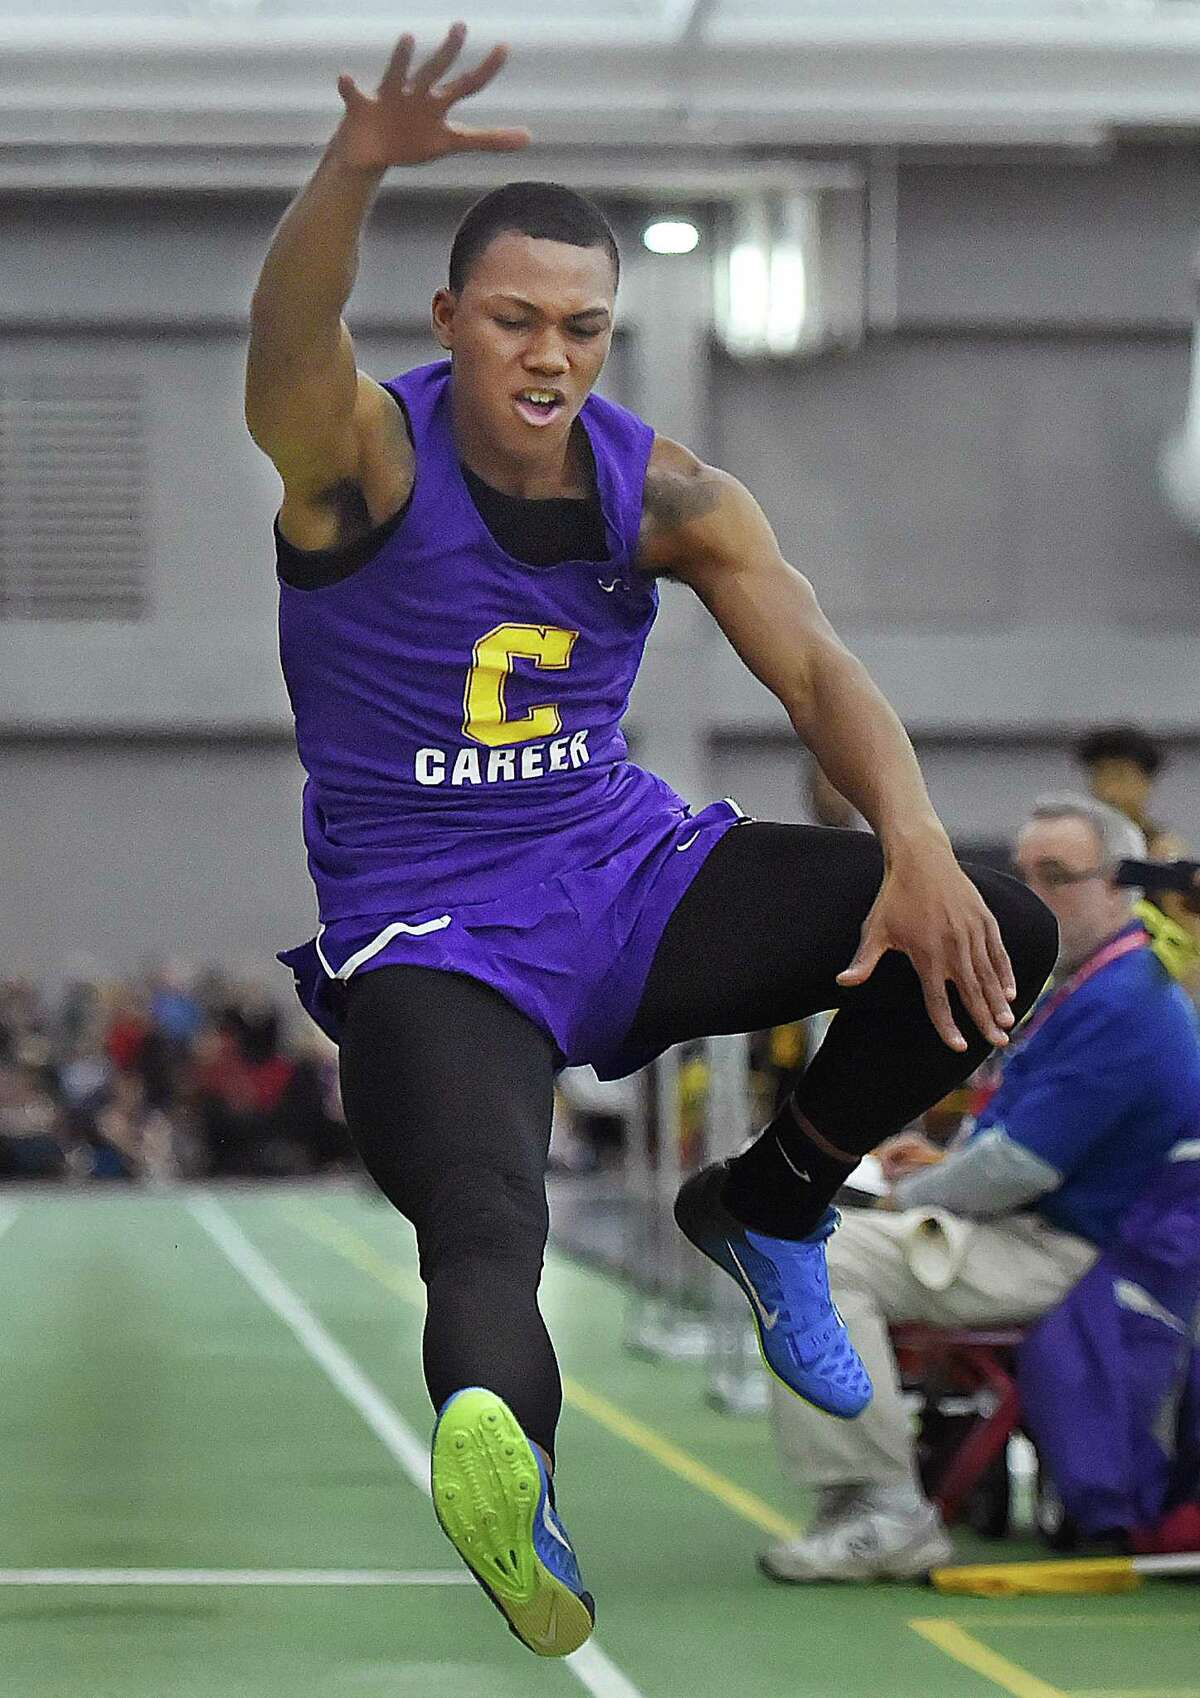 Career senior Dyshon Vaughn wins the long jump with a distance of 23-08 1/2 at the CIAC Boys Indoor Track & Field State Open on Saturday at Floyd Little Athletic Center at Hillhouse High School in New Haven.